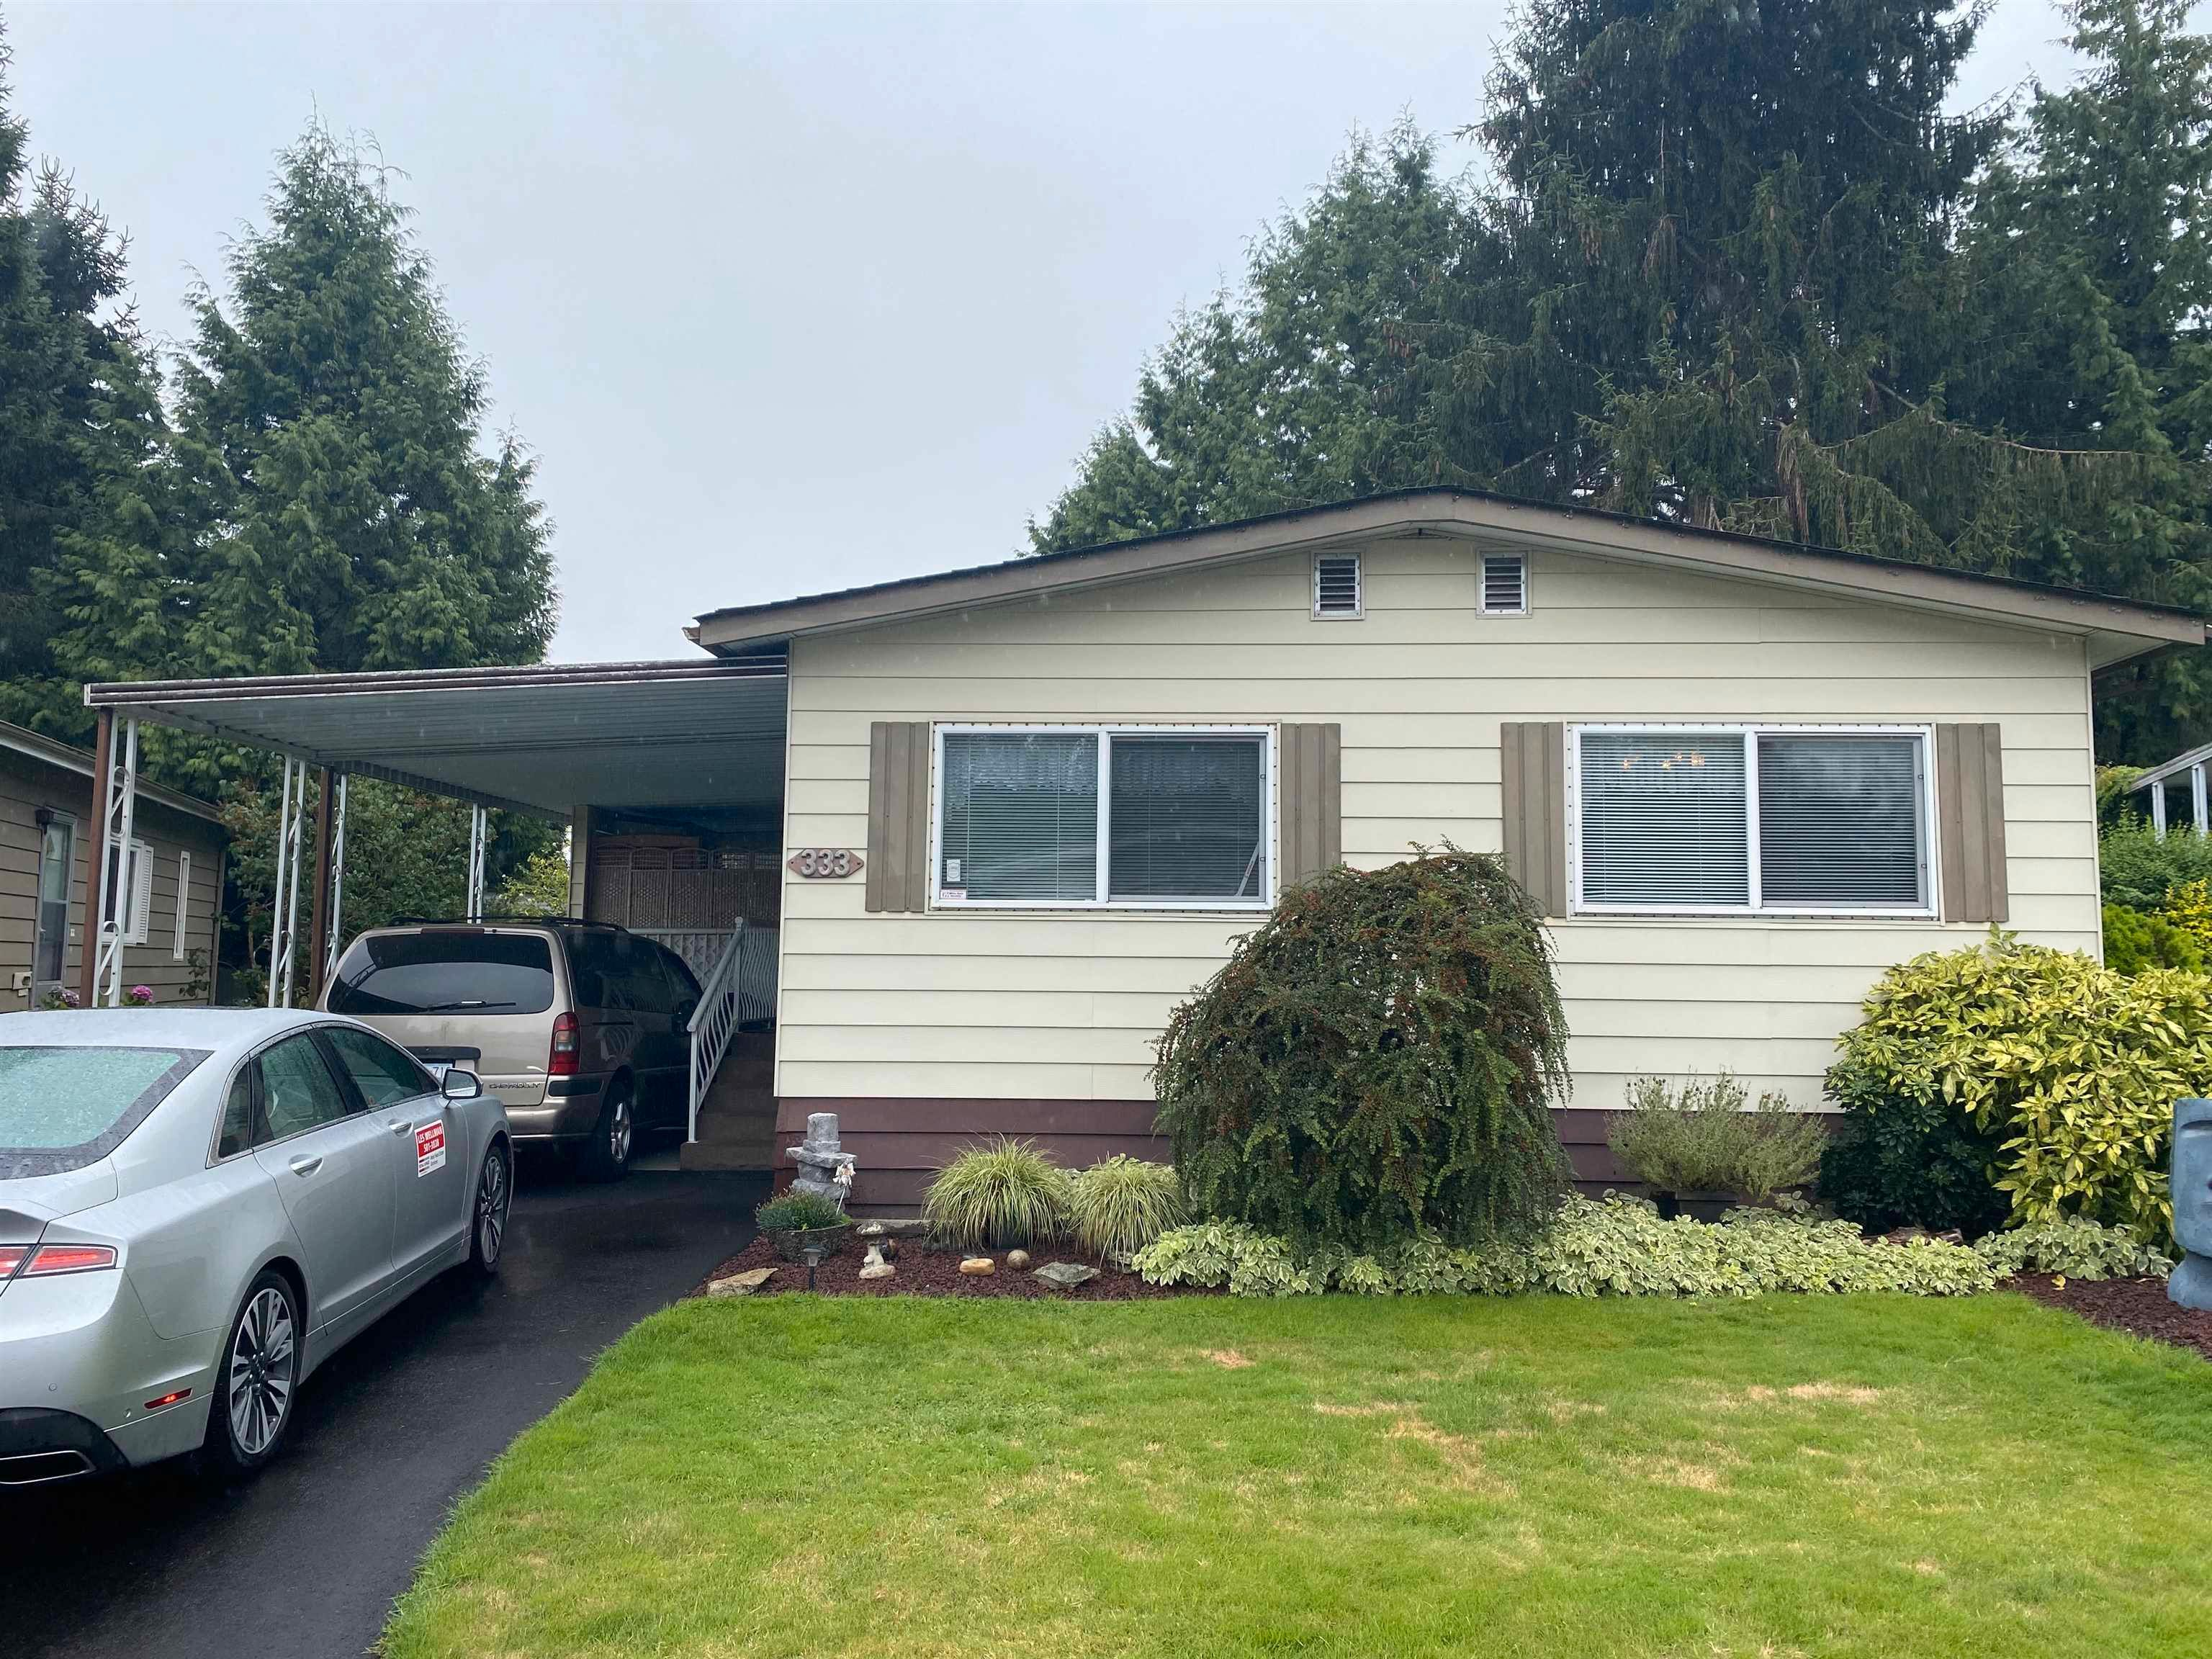 Main Photo: 333 1840 160 Street in Surrey: King George Corridor Manufactured Home for sale (South Surrey White Rock)  : MLS®# R2612670